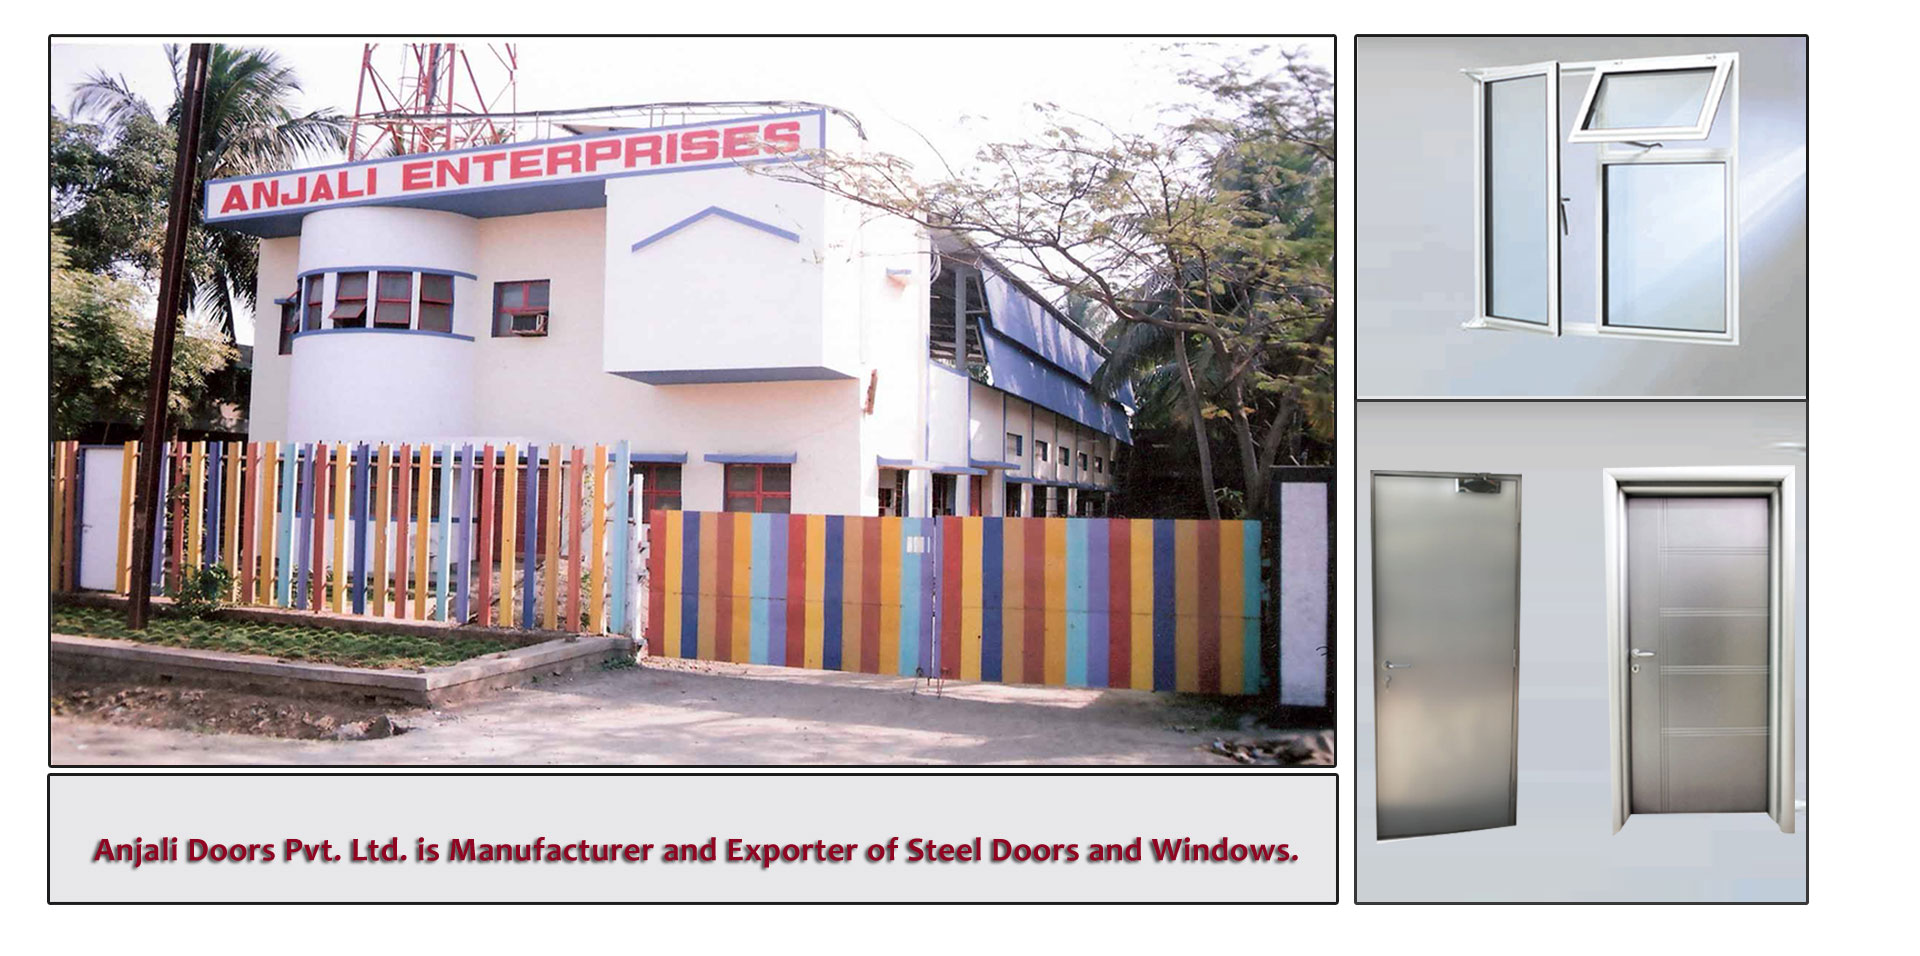 Hollow metal doors door amp gate usa - Anjali Doors Pvt Ltd About Us Manufacturer And Exporter Of Steel Doors Fire Resistance Doors And Windows